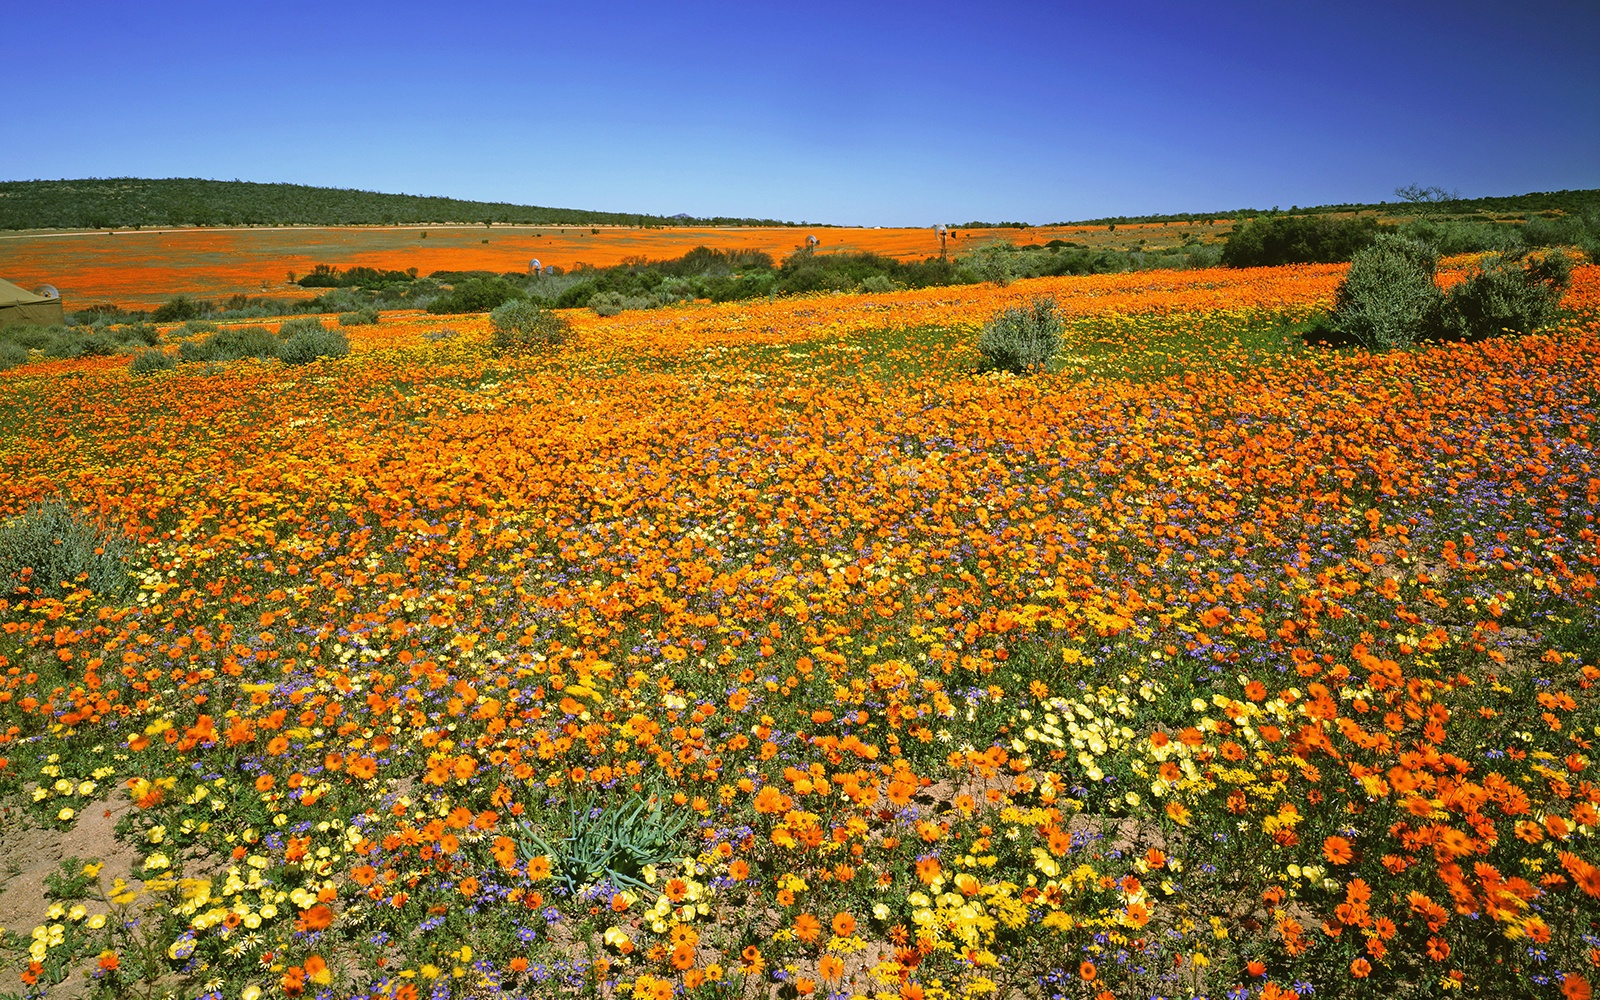 Cape Floral Kingdom, South Africa